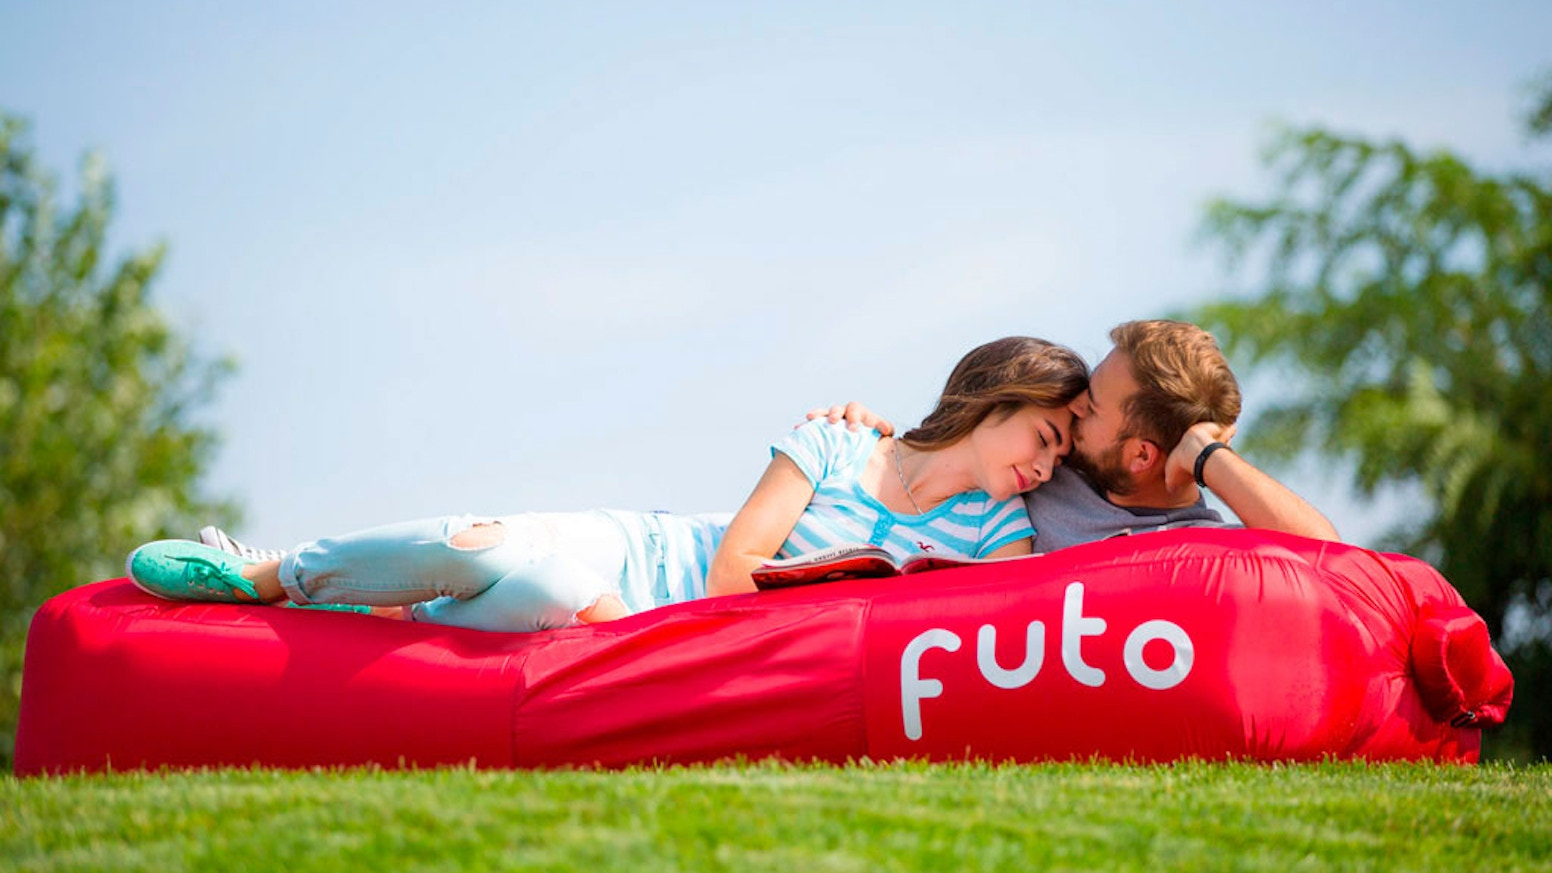 The last air mattress and pillow you will ever need! Easy to inflate,  comfortable - FUTO - The World's Most Ultimate Air Mattress And Pillow By Futo